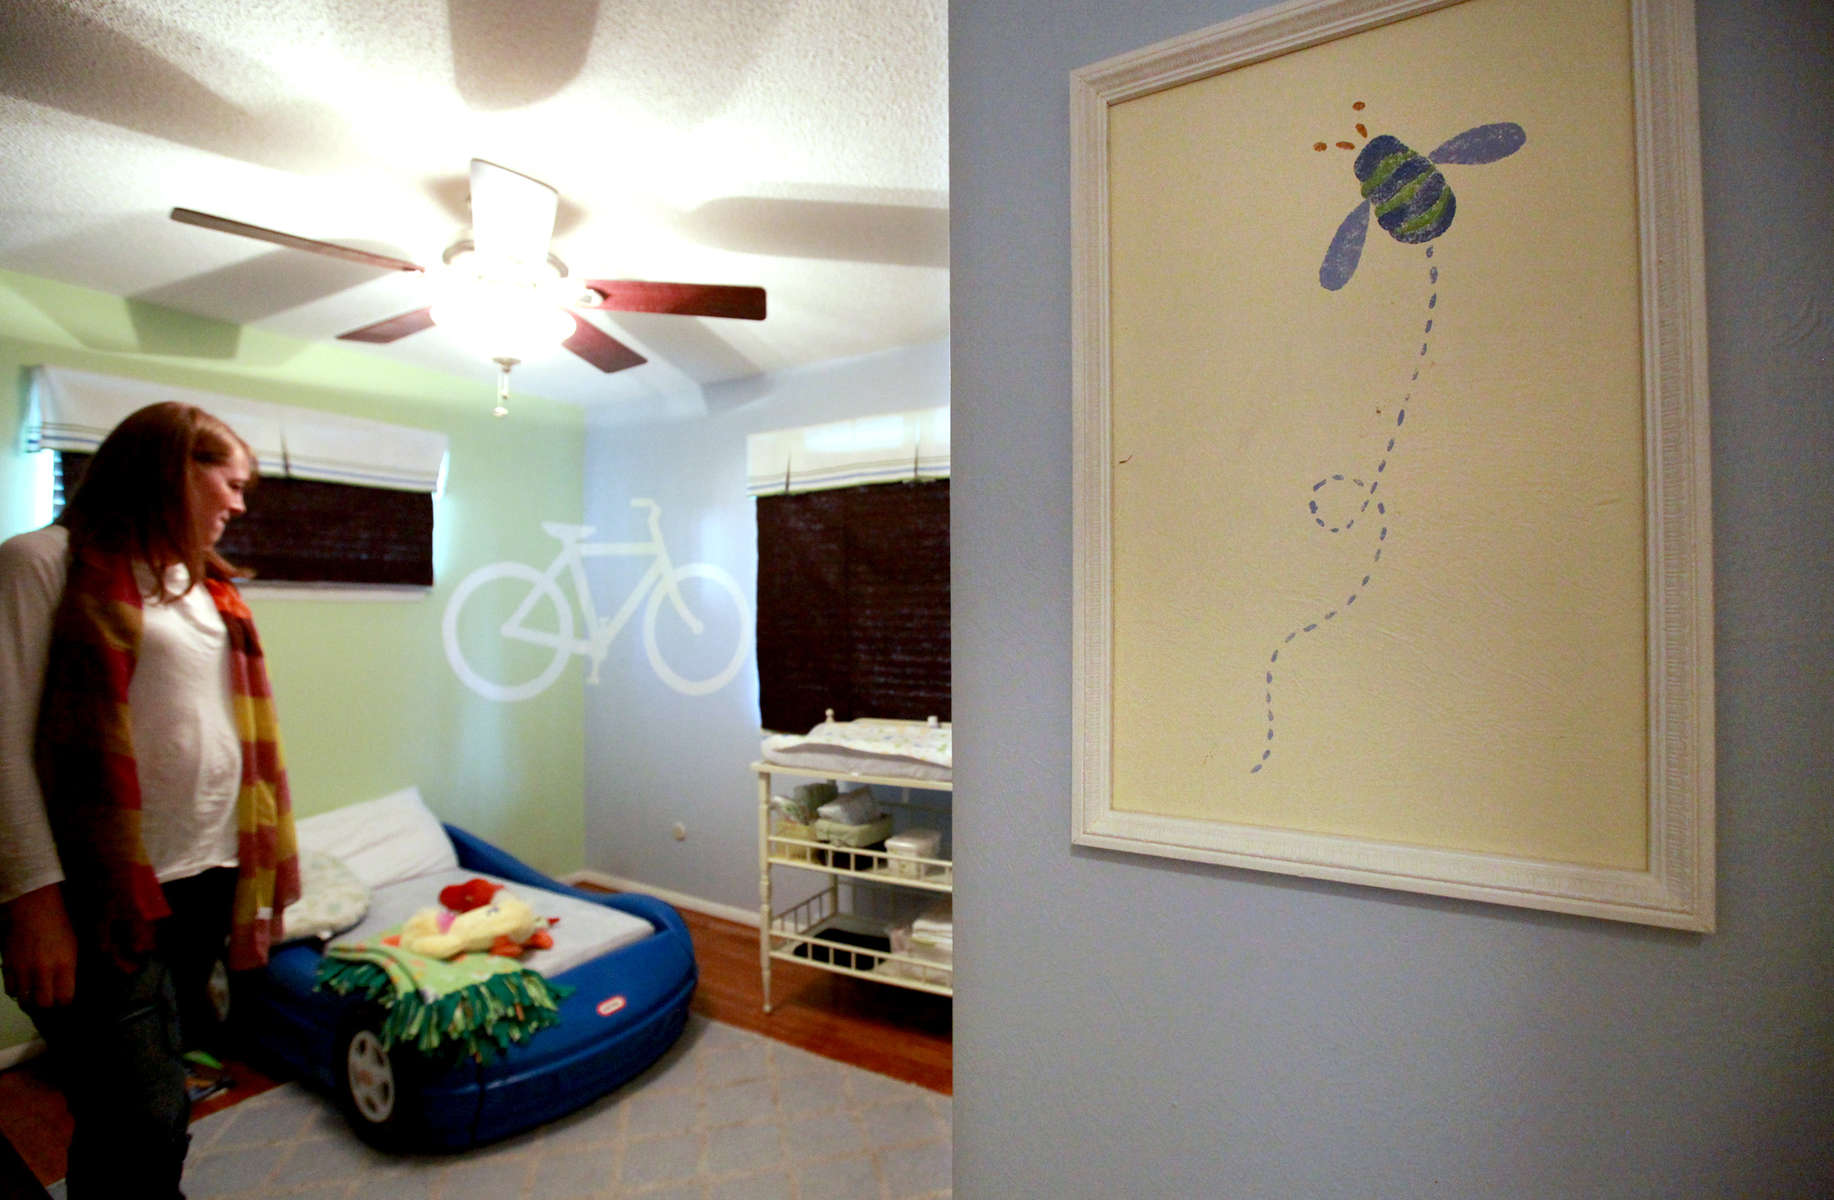 After Noah died, his bedroom remained closed for about a year until Sarah and her husband were expecting a second child. When they repainted, they kept one of the bees painted on the wall from when it was Noah's room, and put a frame around it. {quote}We had to keep a little bit of Noah here,{quote} says Sarah.